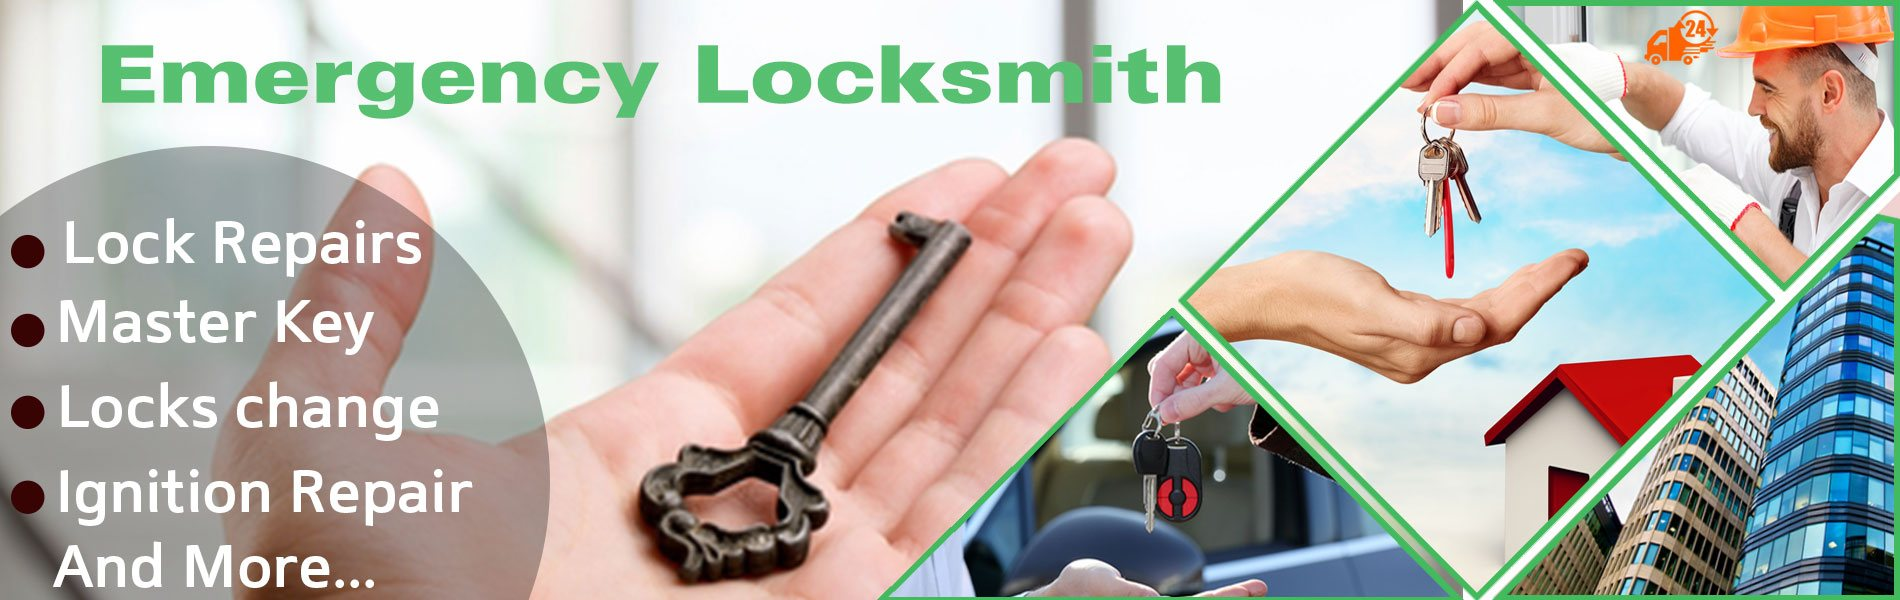 Lock Safe Services Grafton, OH 440-337-9019